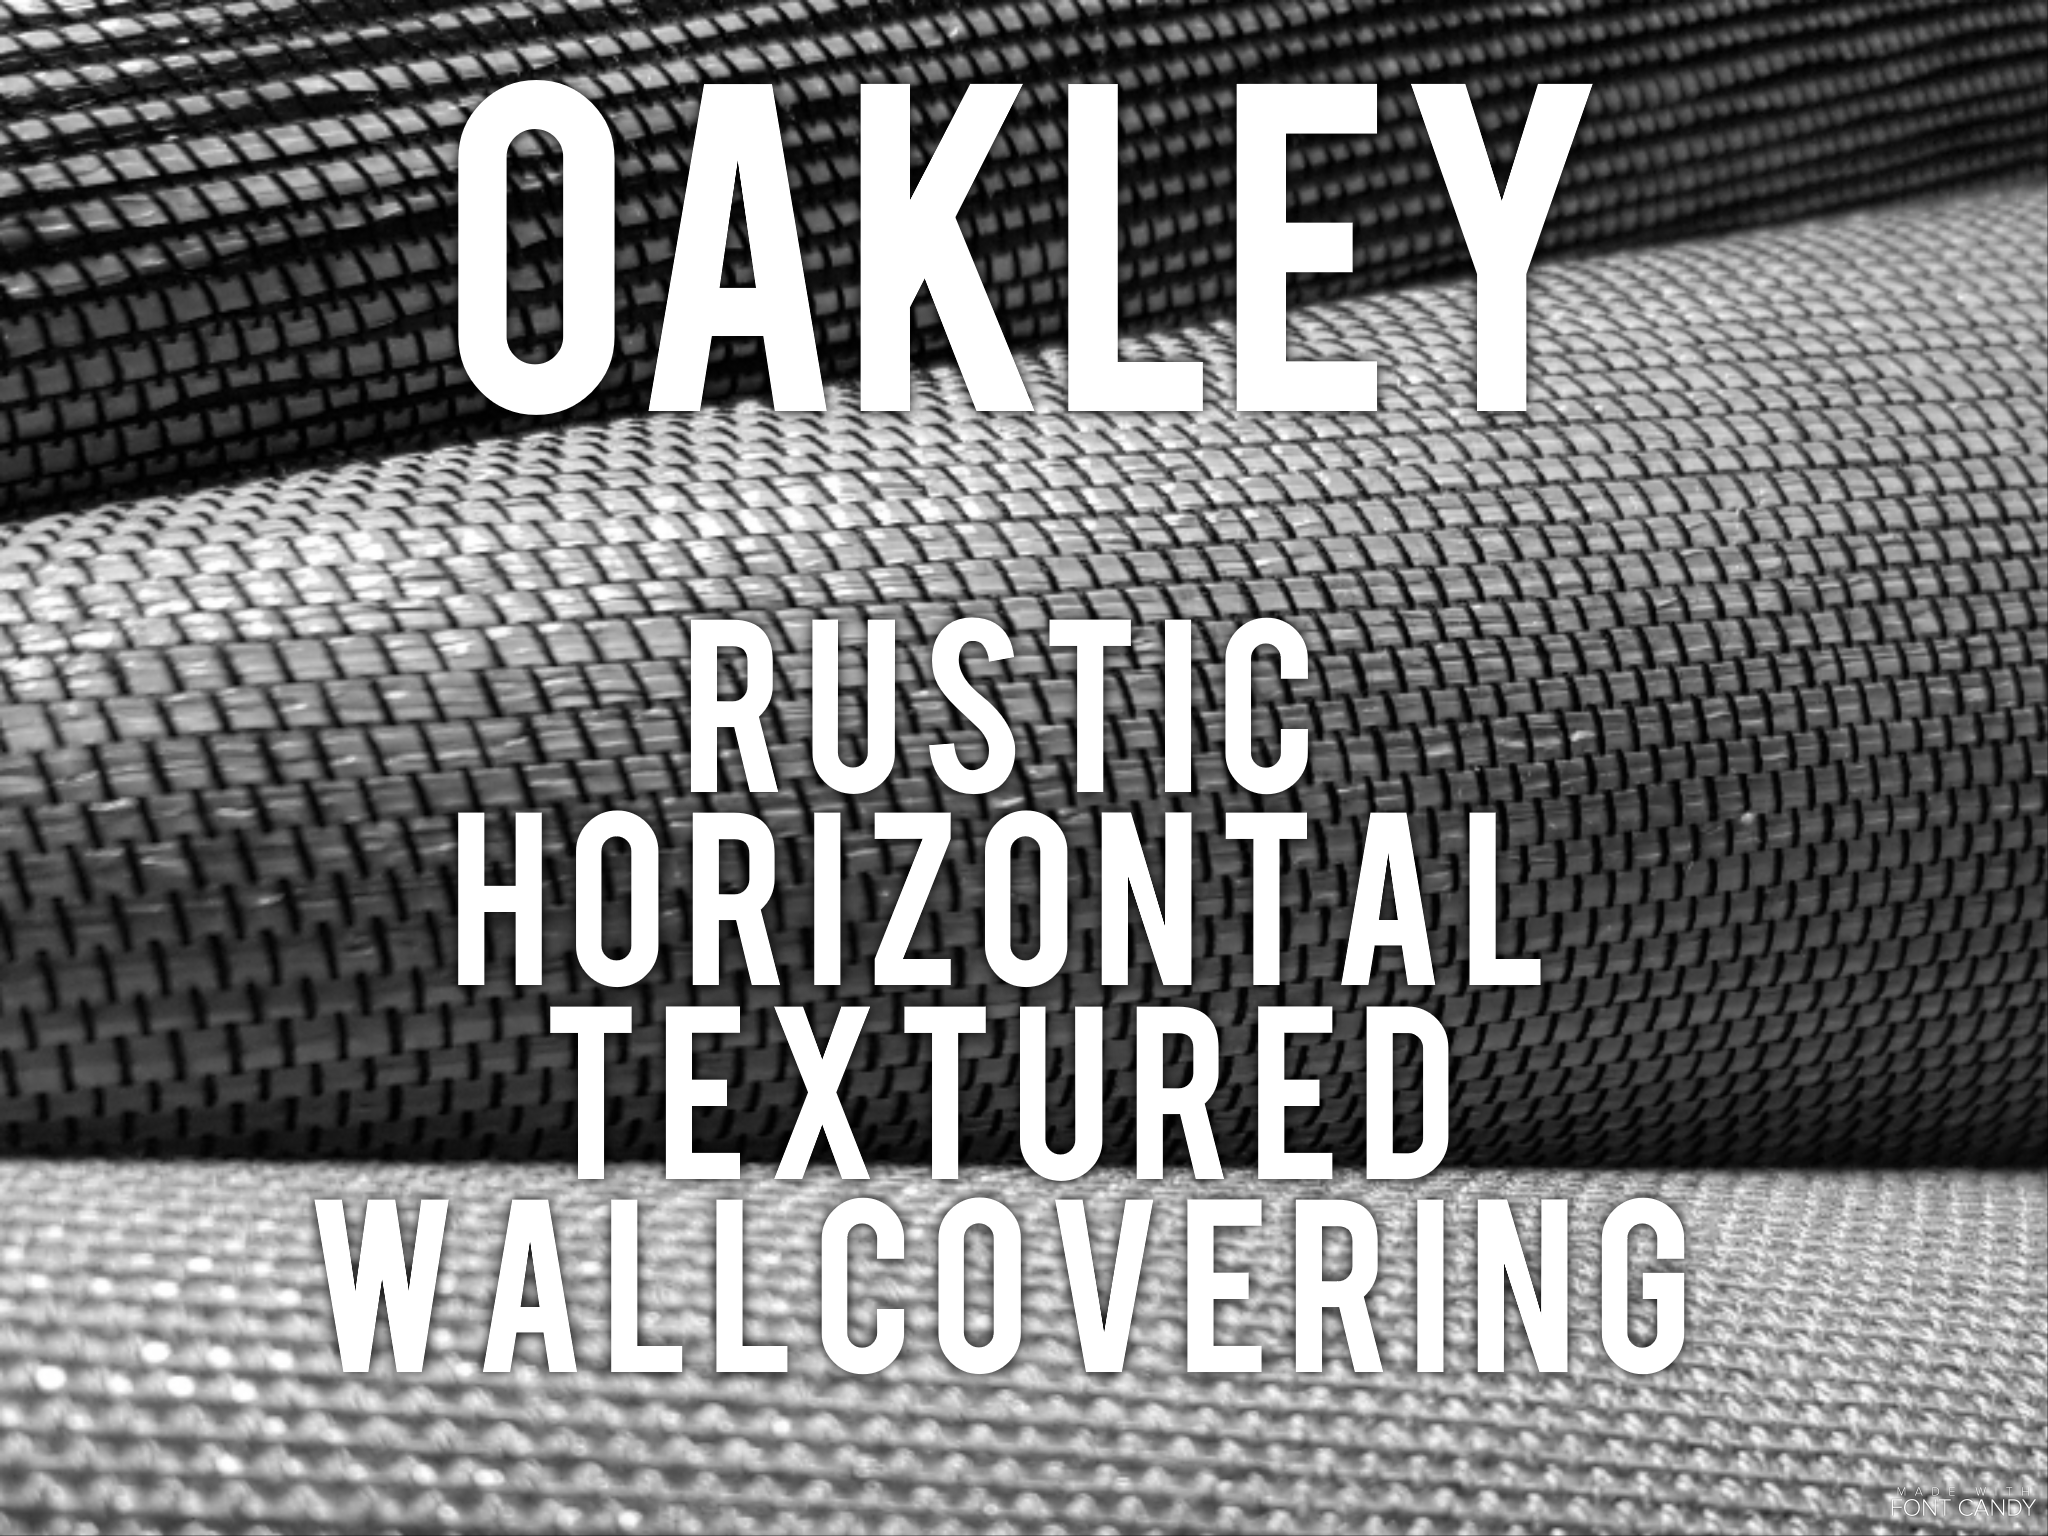 Oakley - Rustic Horizontal textured wallcovering